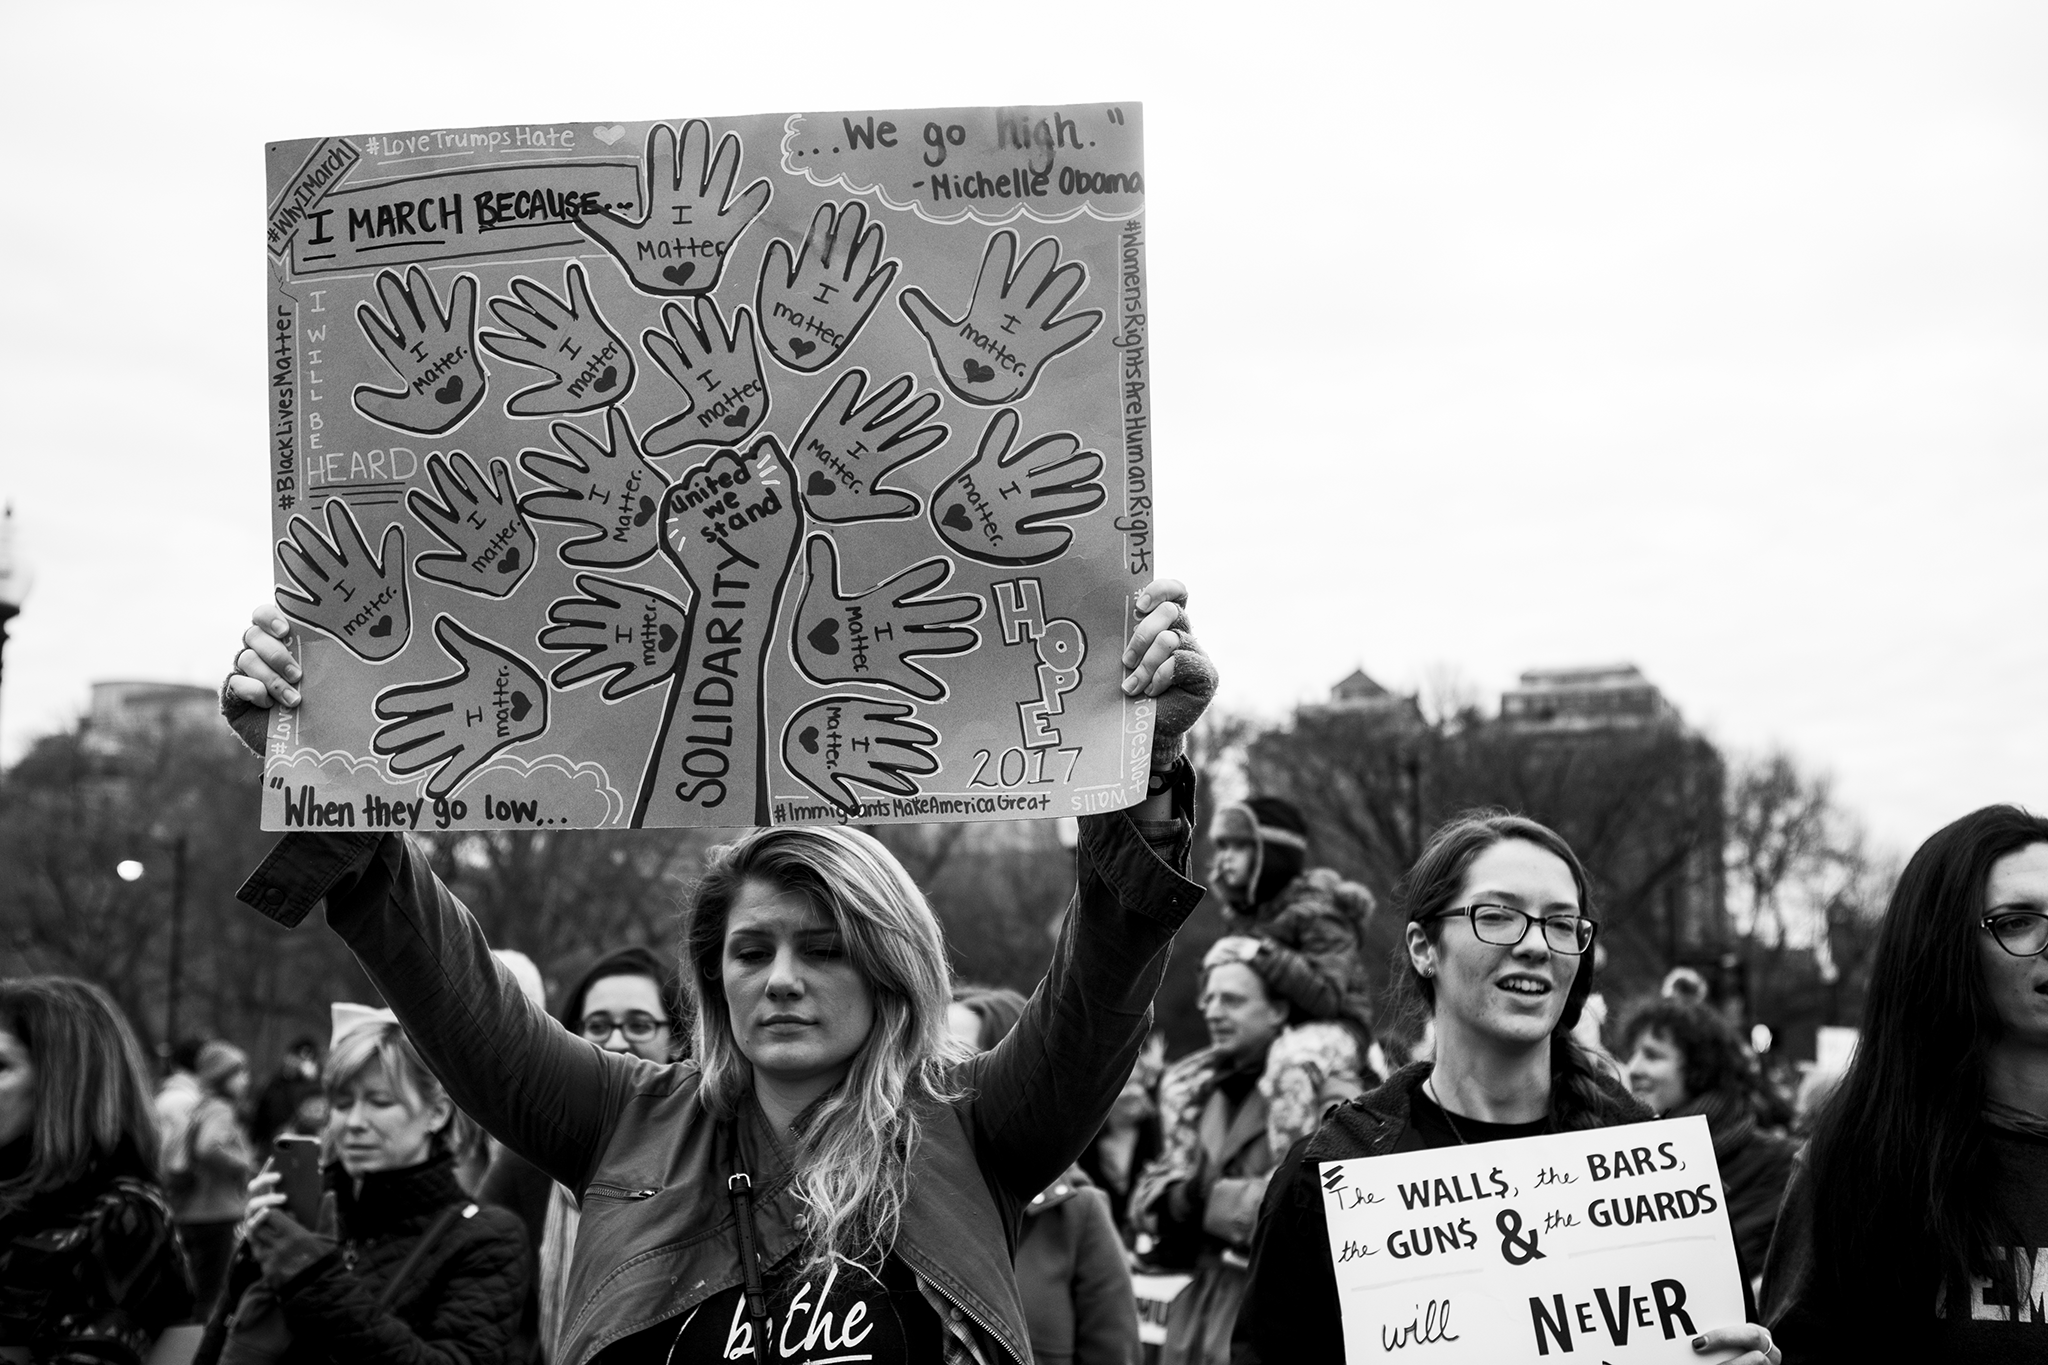 Why I march protest sign held by young blond women at the women's march on washington sister march in boston.